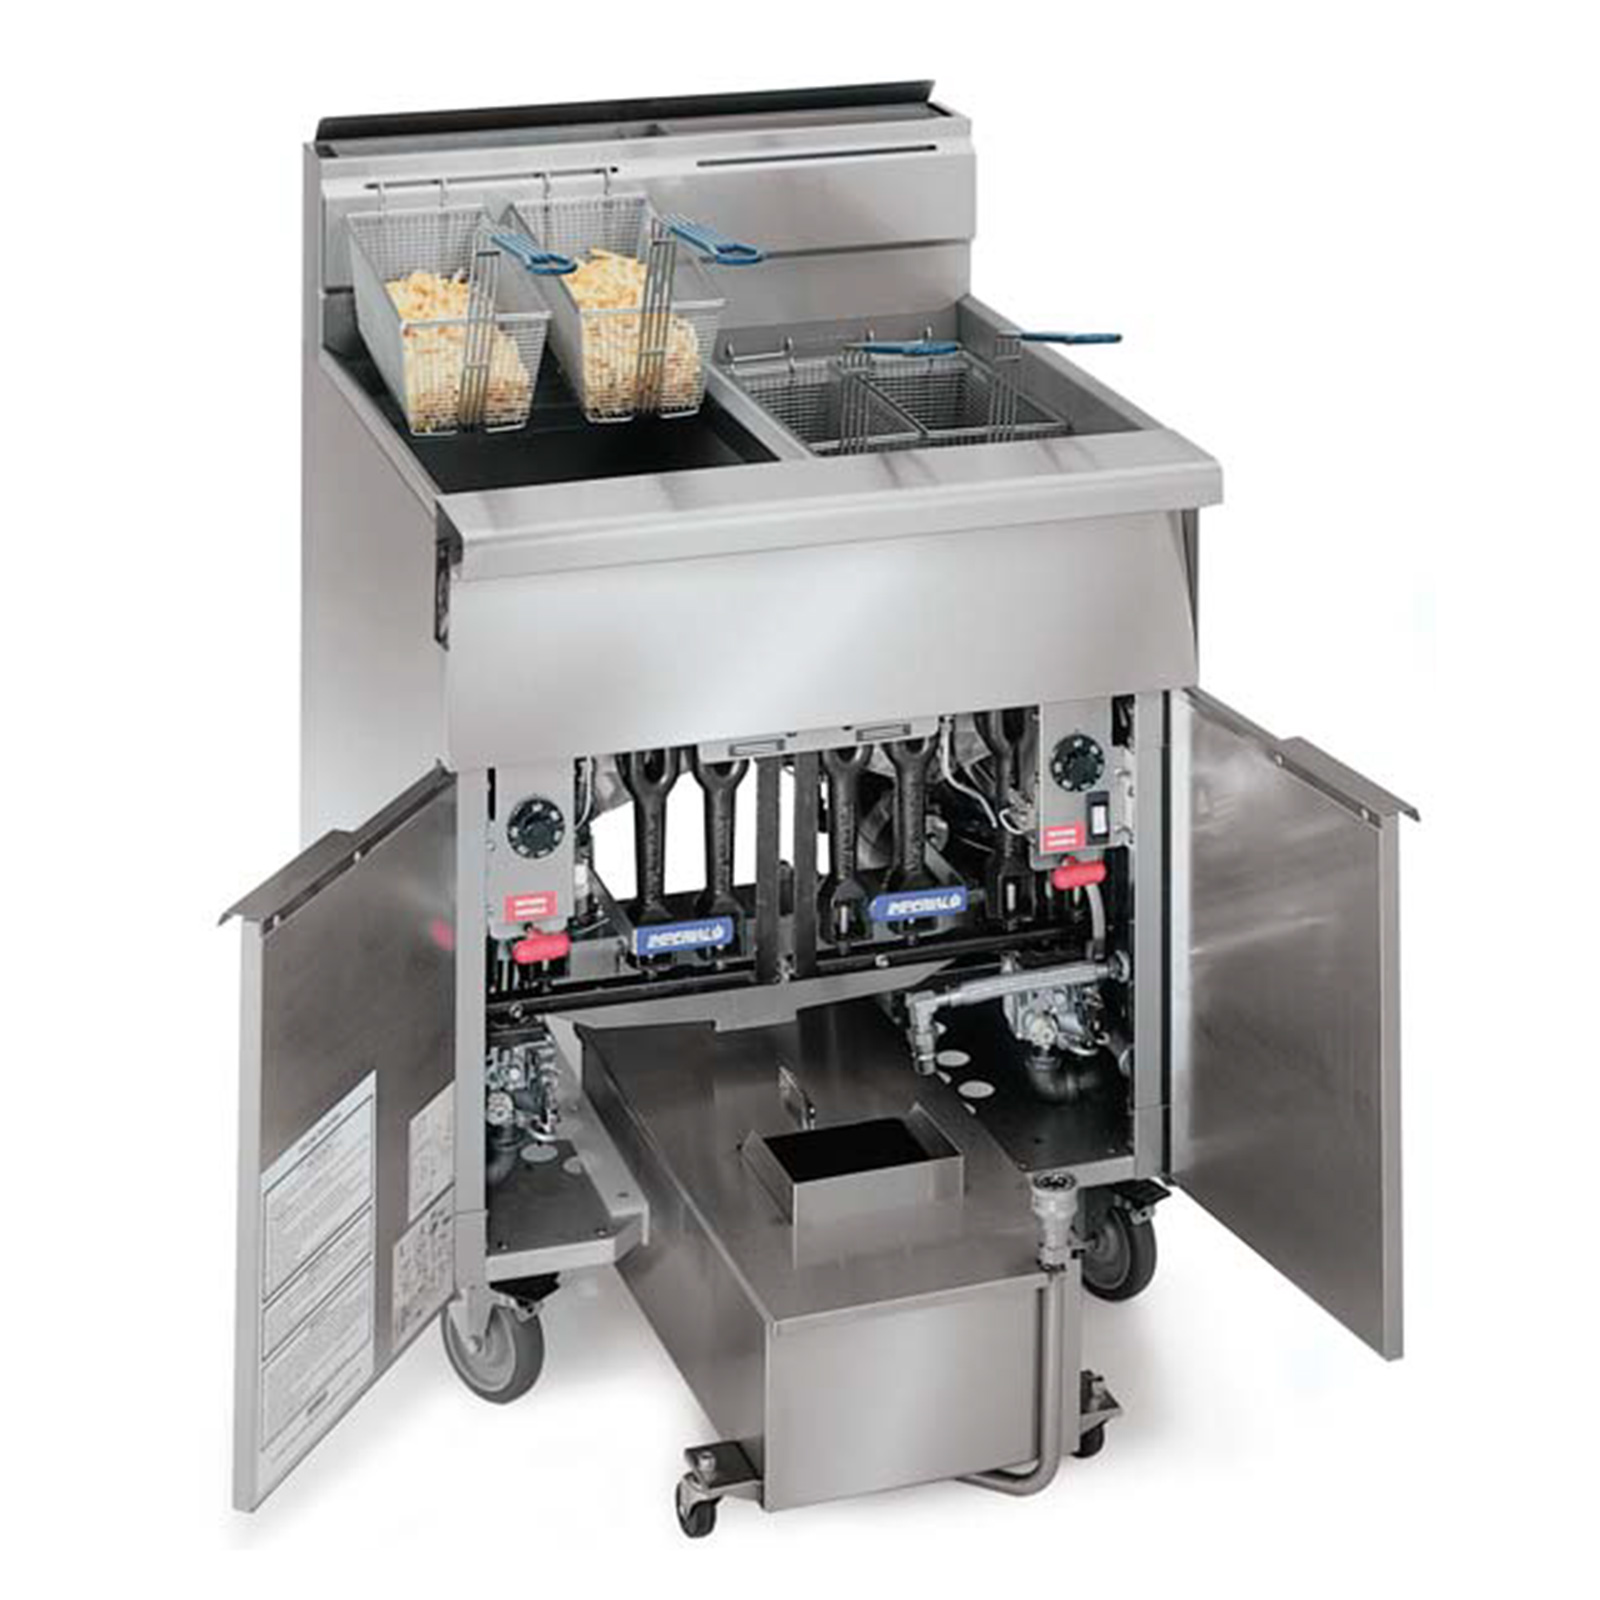 Imperial IHRSP475T fryer, gas, multiple battery